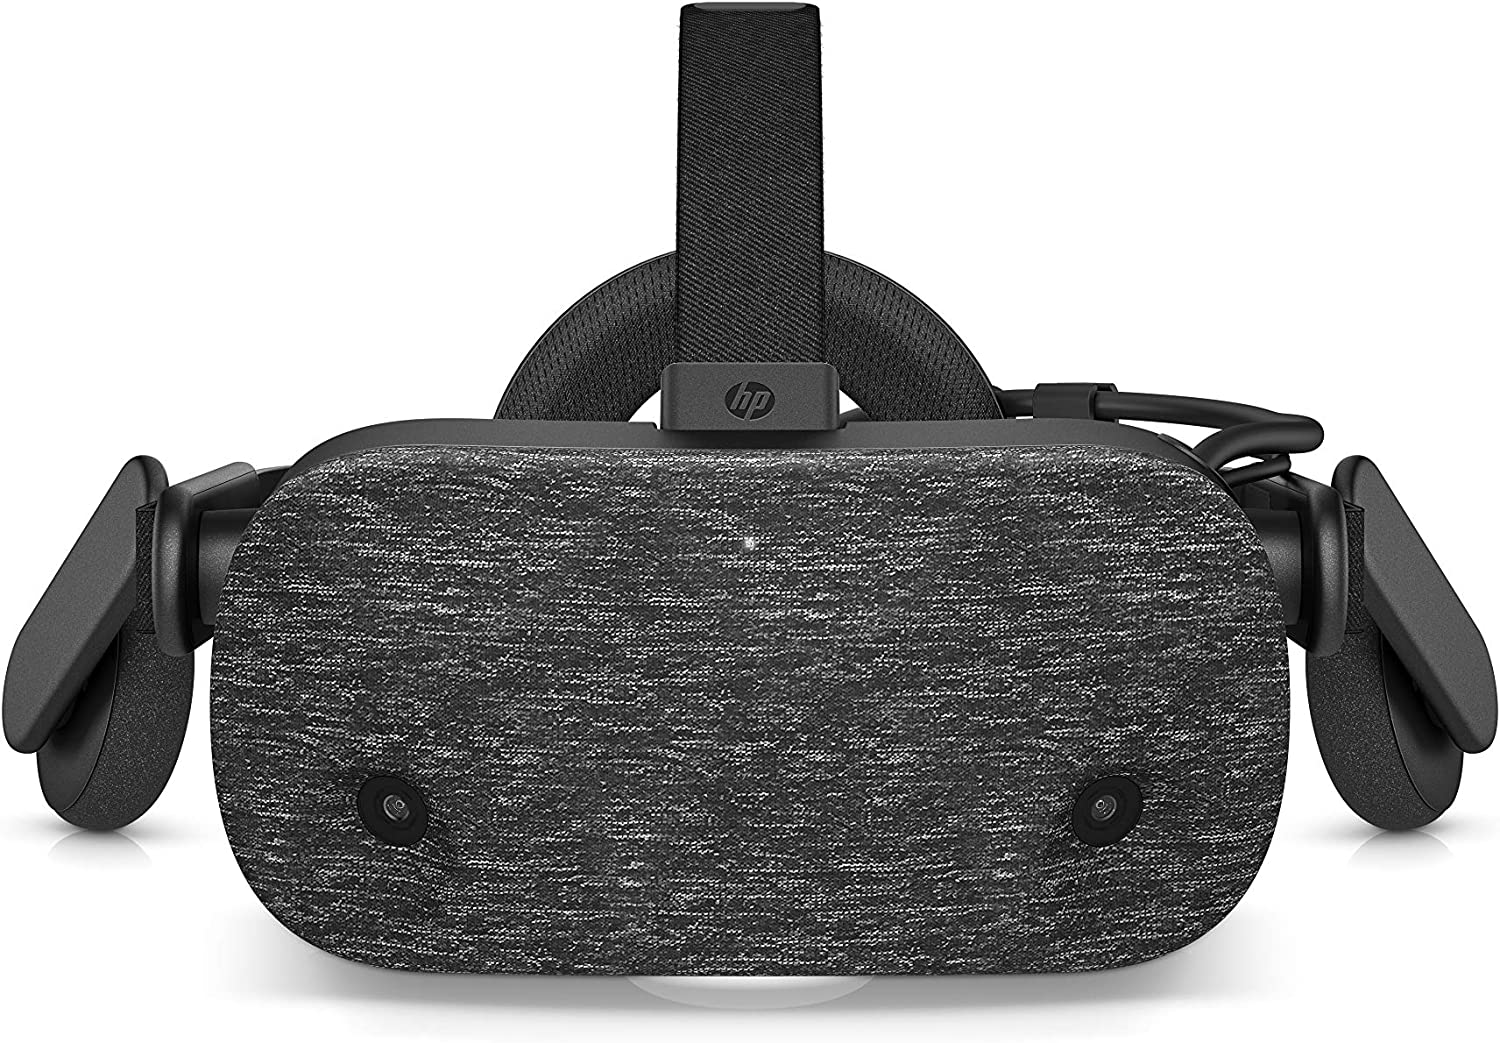 "HP Reverb VR Headset w 2.89"" Display, 2160 x 2160 LCD Panels, 114-Degree Field of View, Dual Forward Cameras, 90Hz Paired to DisplayPort 1.3, Bluetooth, Built-in Audio, 3.5mm Audio Jack (VR1000-200)"